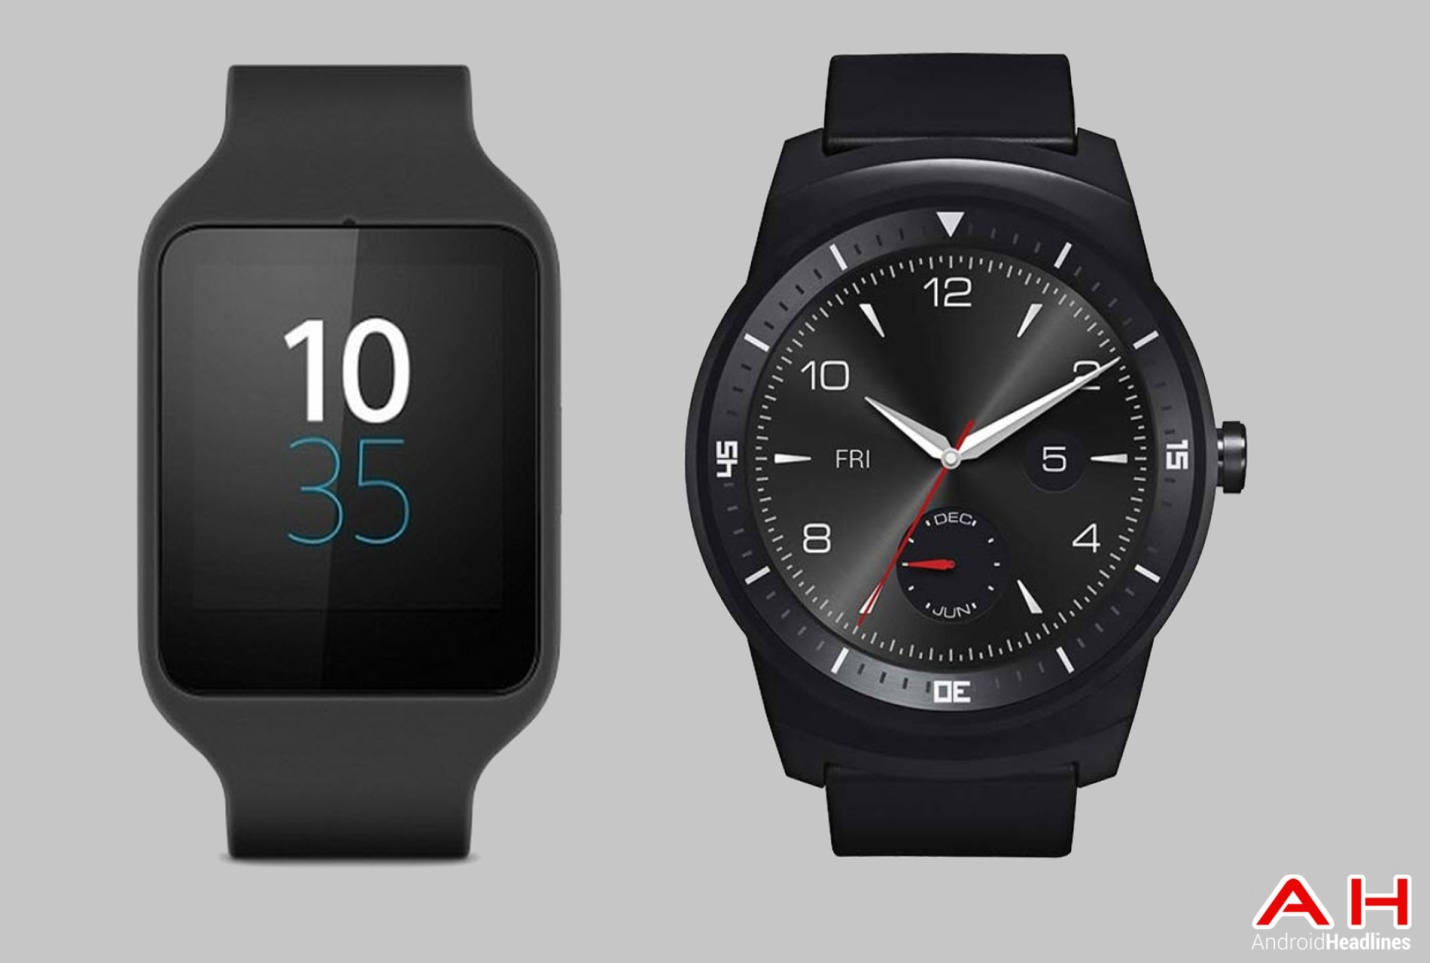 Sony SmartWatch 3 với LG G Watch R